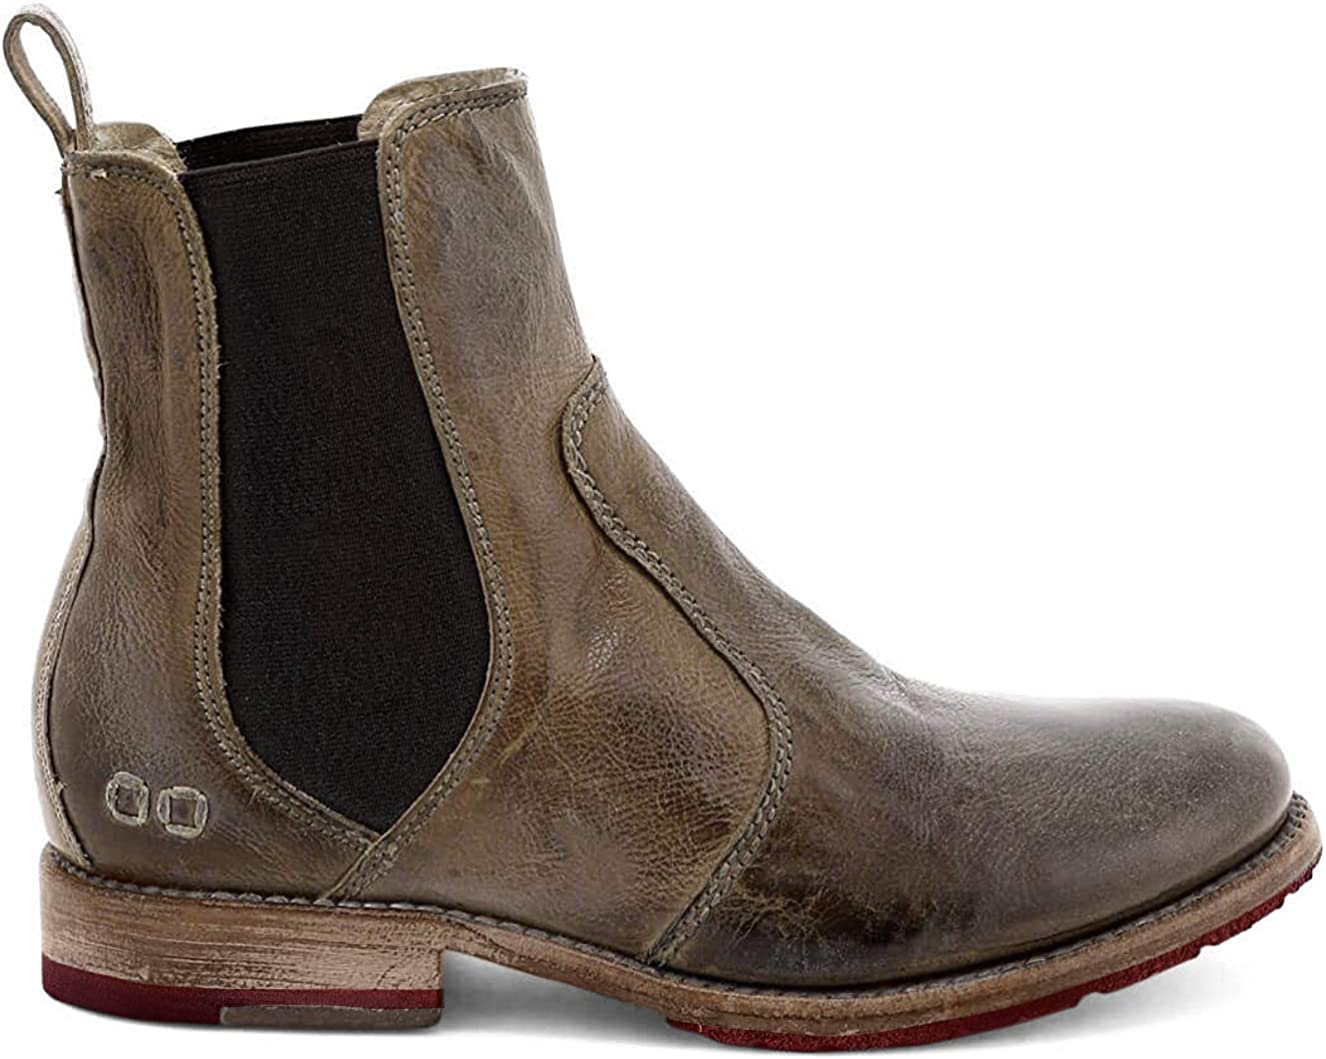 Bed Easy-to-use Stu Nandi Boots Clearance SALE Limited time Leather Womens